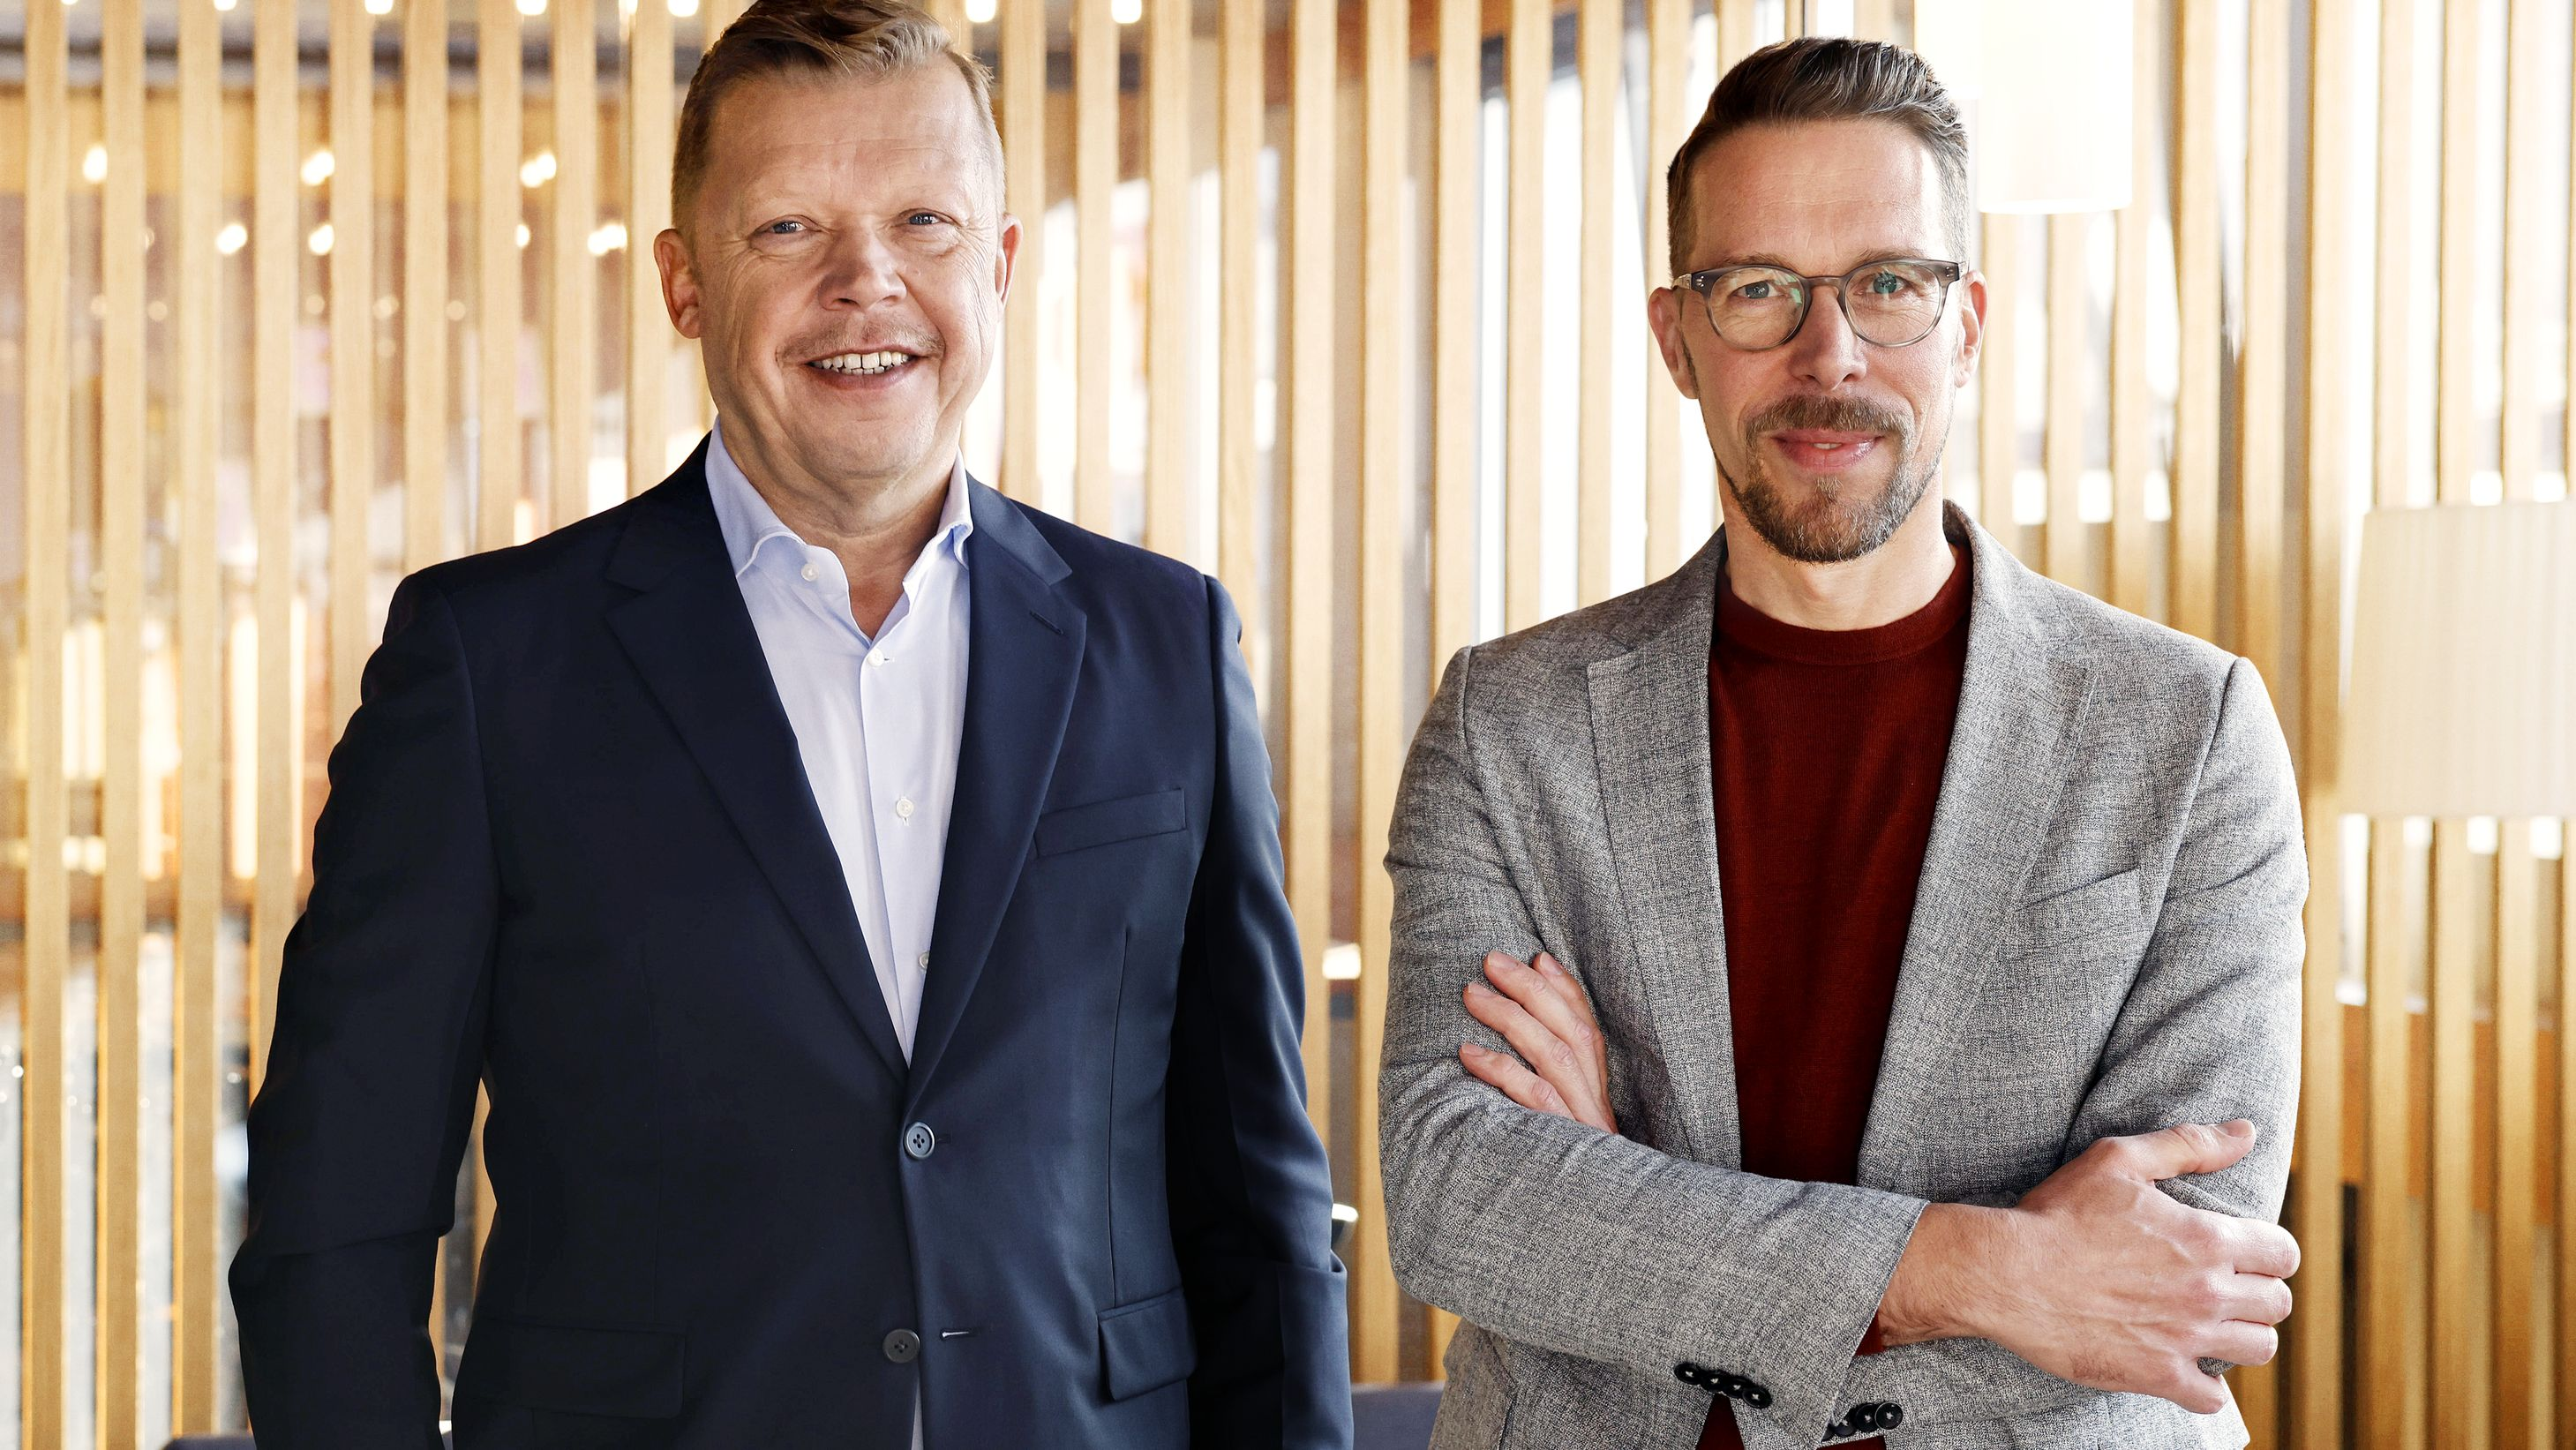 Doppelspitze: Thomas Wagner und Andreas Kösling stehen als Chief Sales Officer beziehungsweise als Chief Commercial Officer an der Spitze der Seven-One Entertainment Group